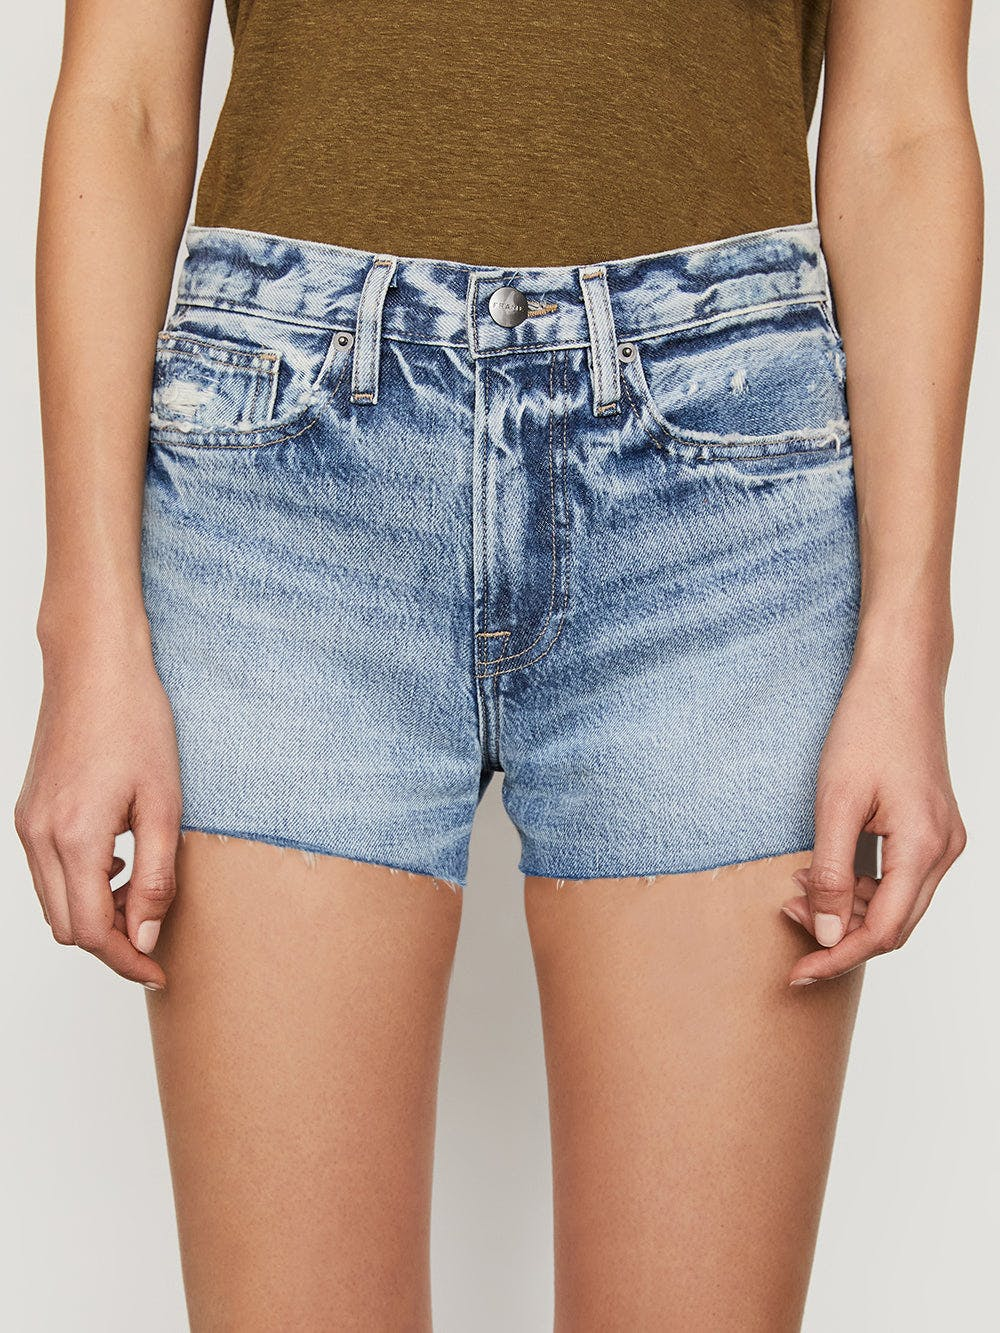 shorts front detail view